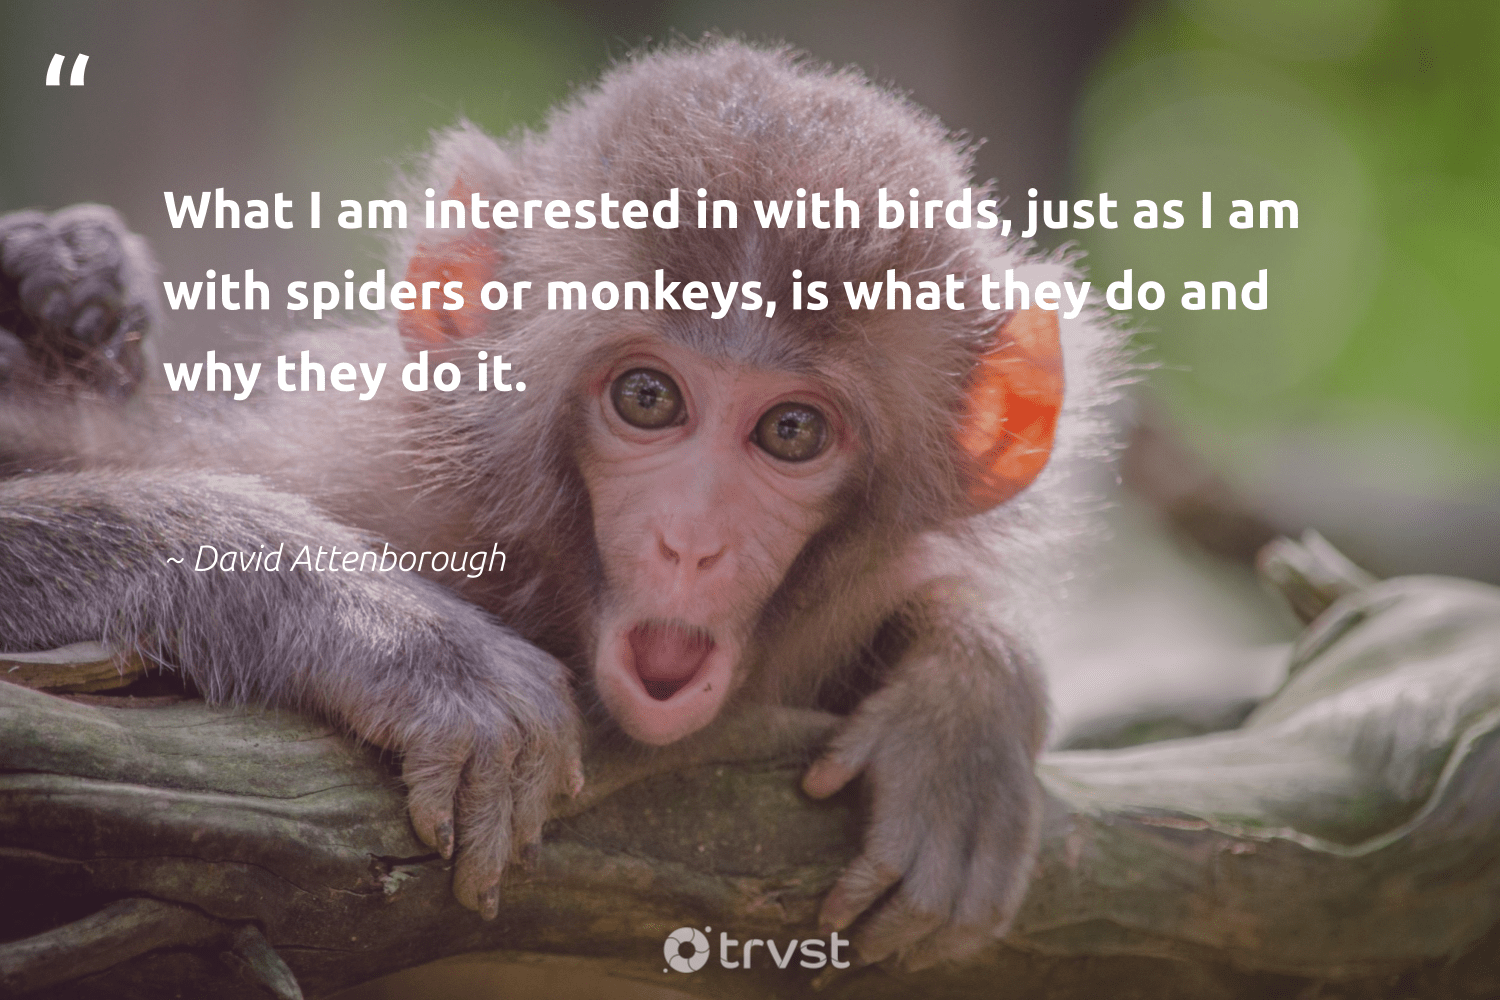 """What I am interested in with birds, just as I am with spiders or monkeys, is what they do and why they do it.""  - David Attenborough #trvst #quotes #birds #monkeys #bird #conservation #nature #gogreen #monkey #geology #bethechange #wild"